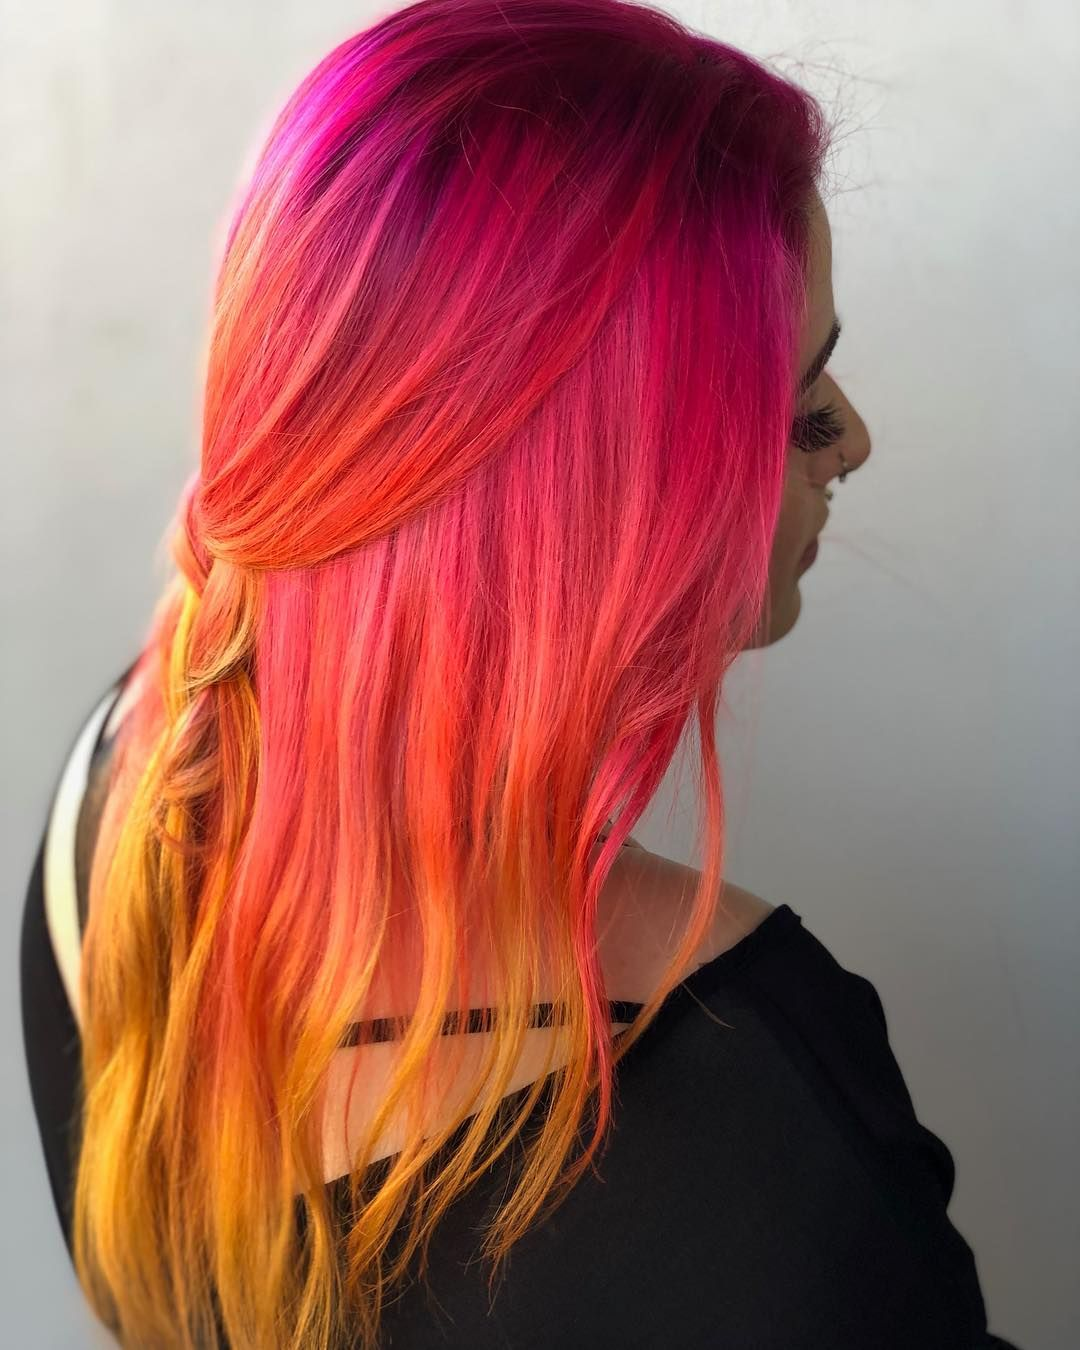 Pin by Nonie Chang on Dyed Hair in Pinterest Hair Dyed